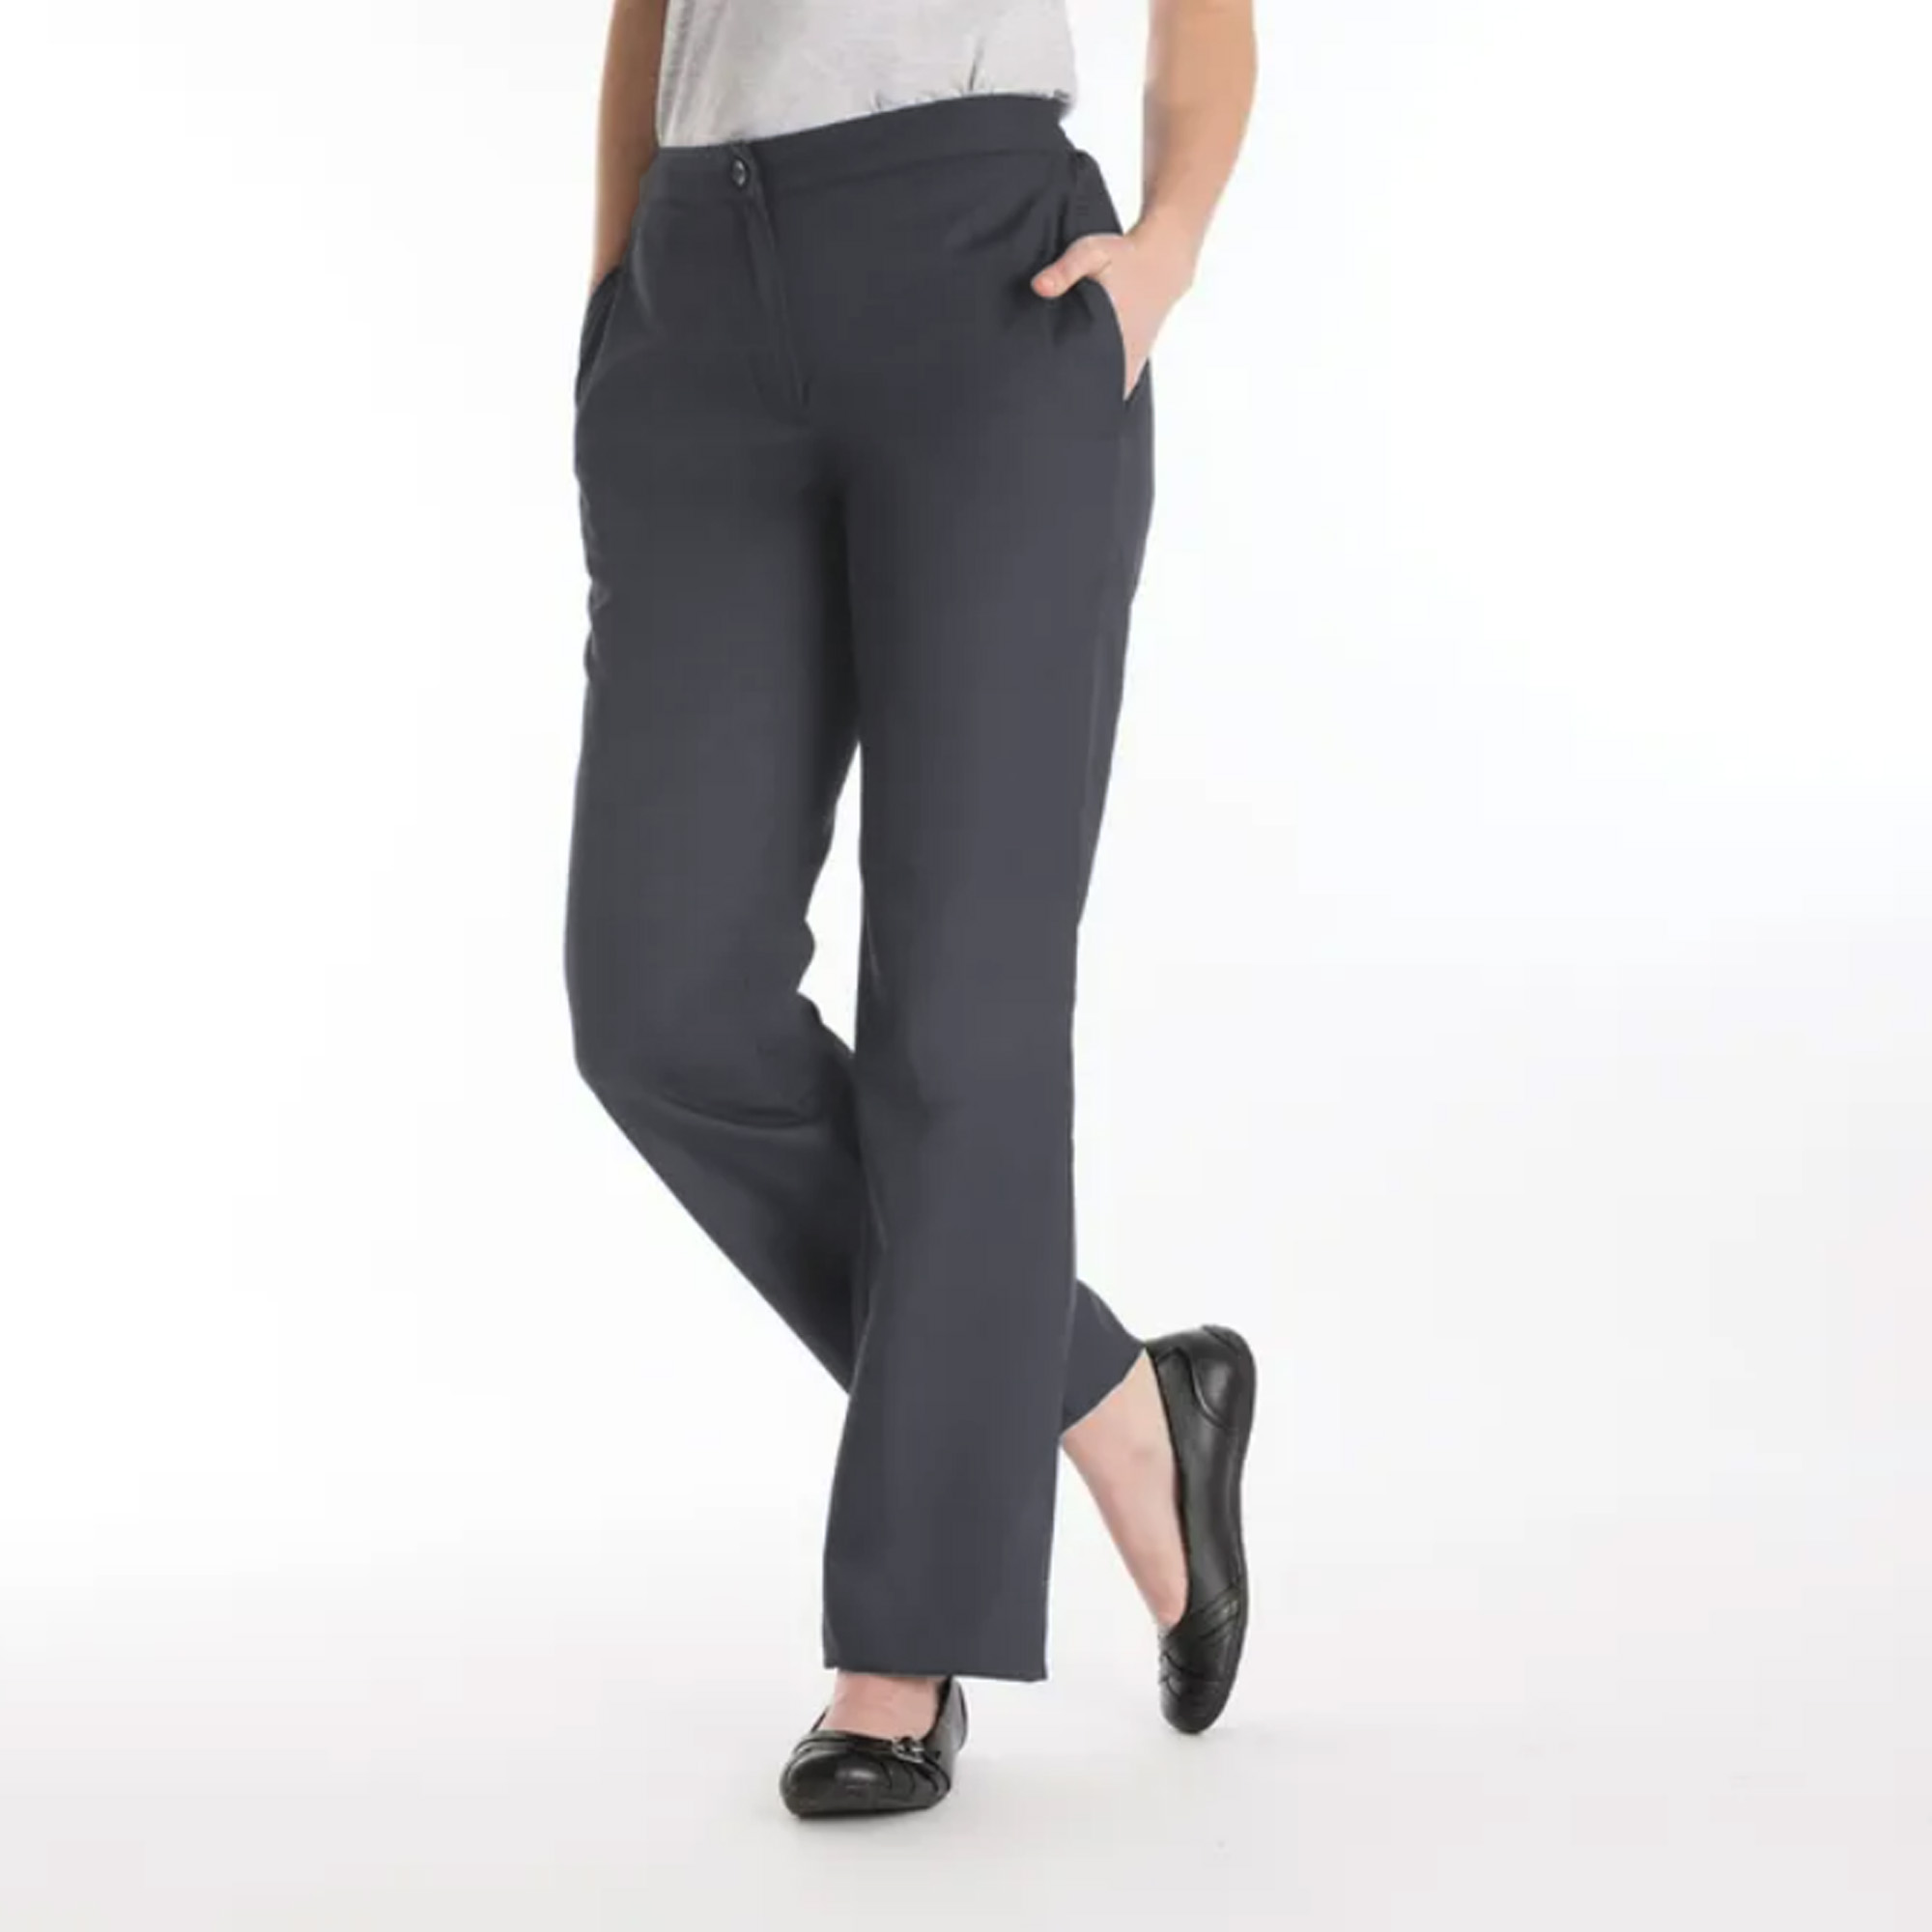 We offer you wide-leg pants for women in a variety of sizes and styles. We have high-waist wide-leg pants that are perfect for office or formal wear. For casual outings, pick our wide-leg pants .